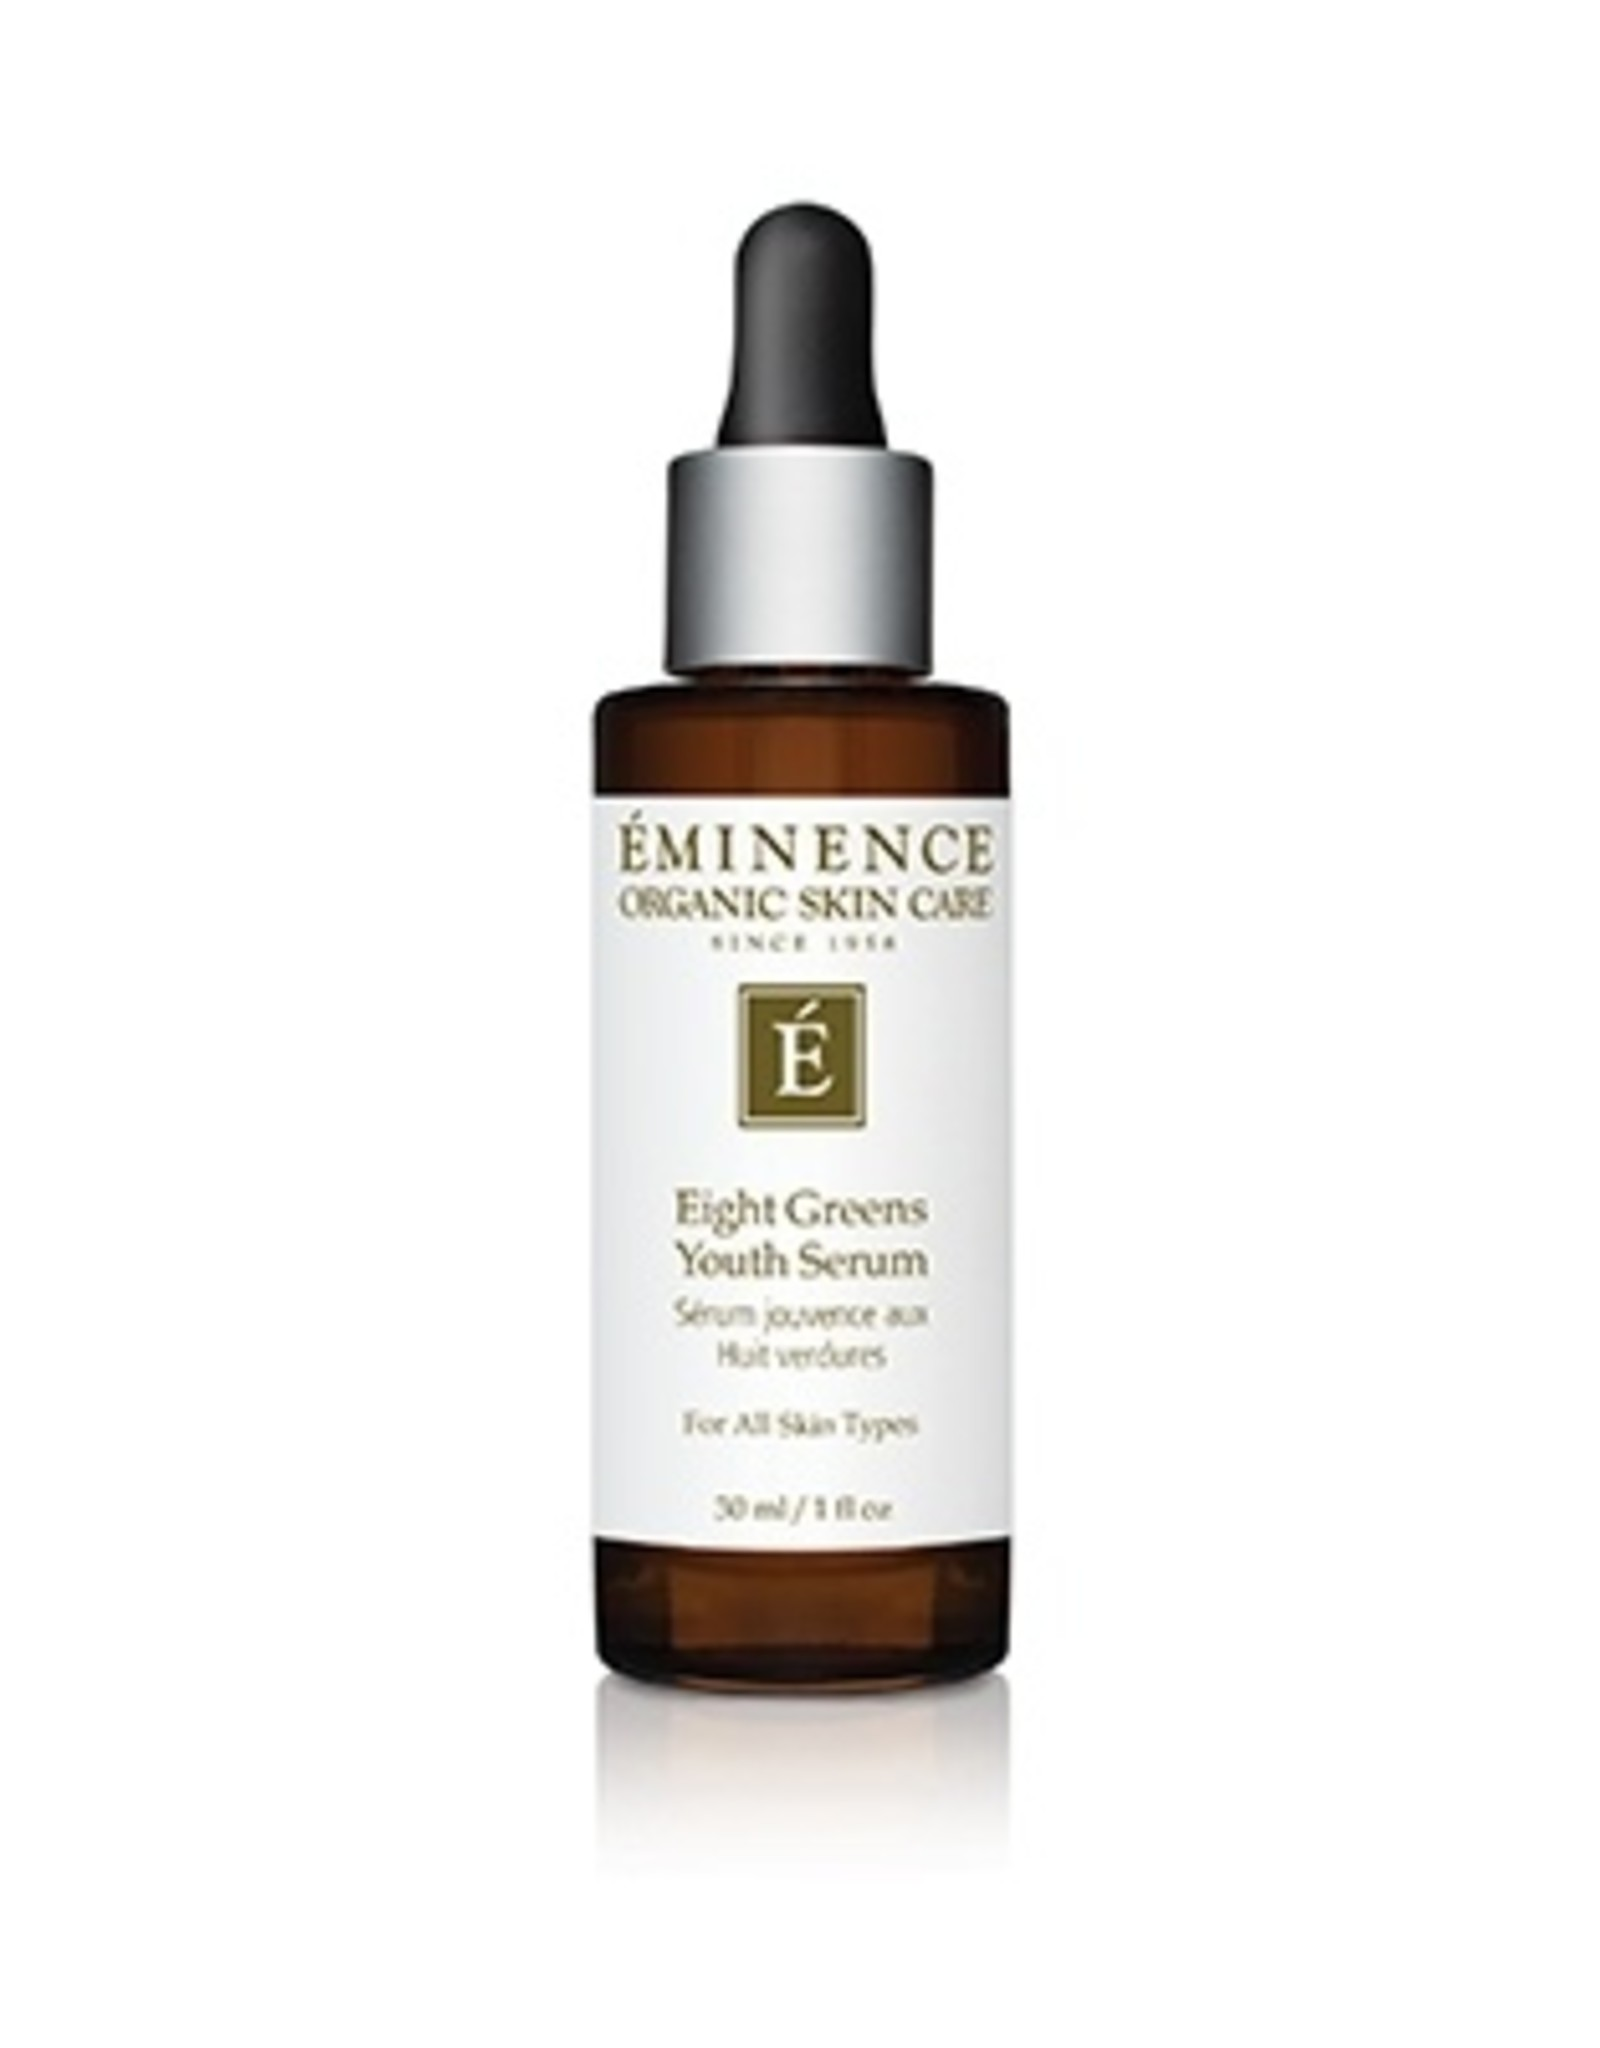 Eminence Organic Skin Care Eight Greens Youth Serum